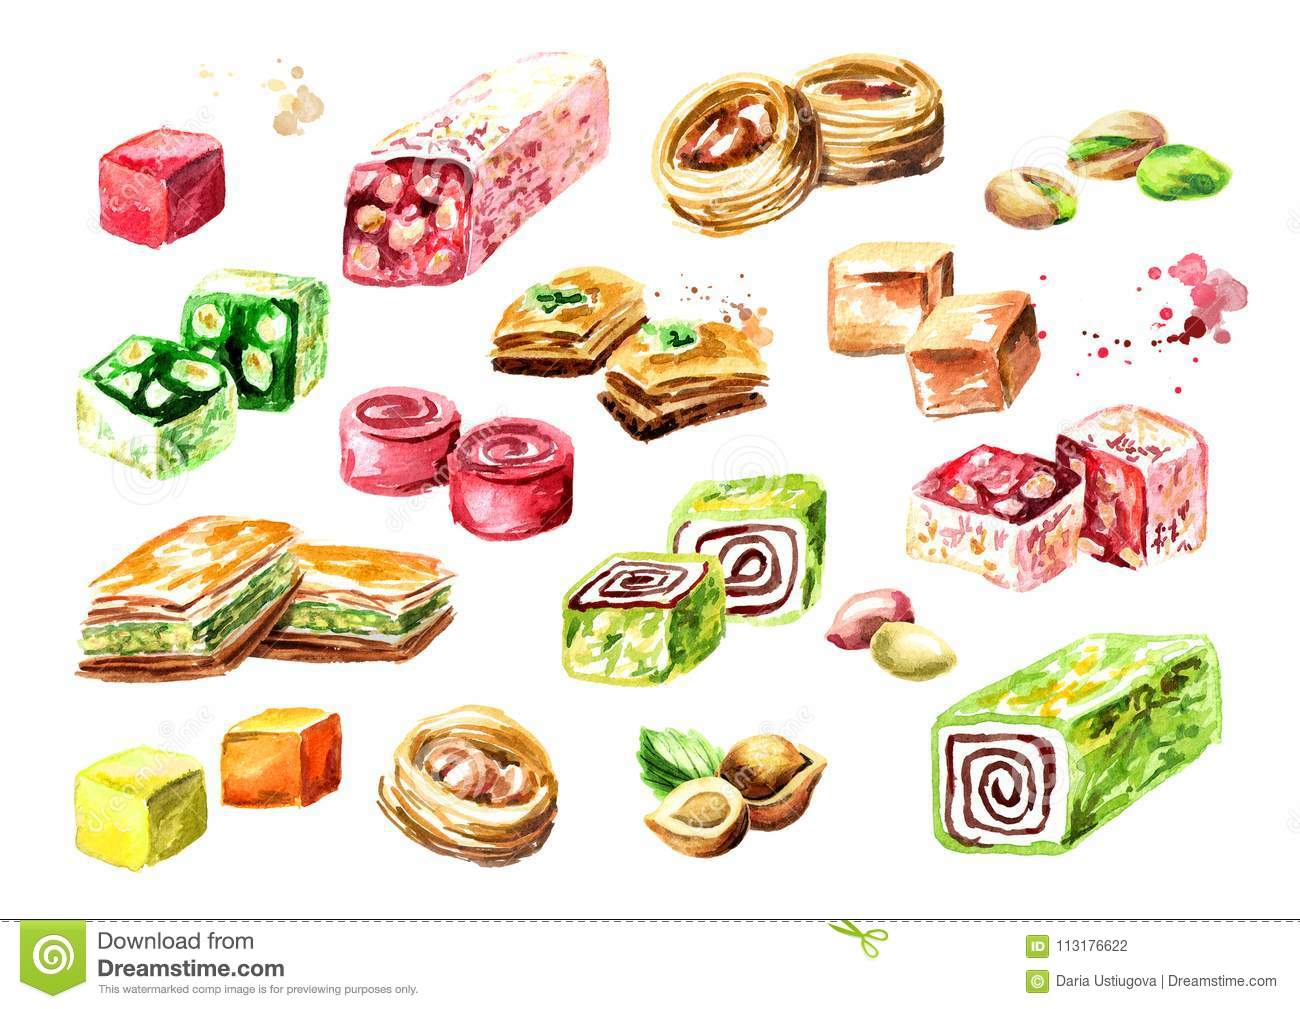 Turkish delights set. Watercolor hand drawn illustration, isolated on white background